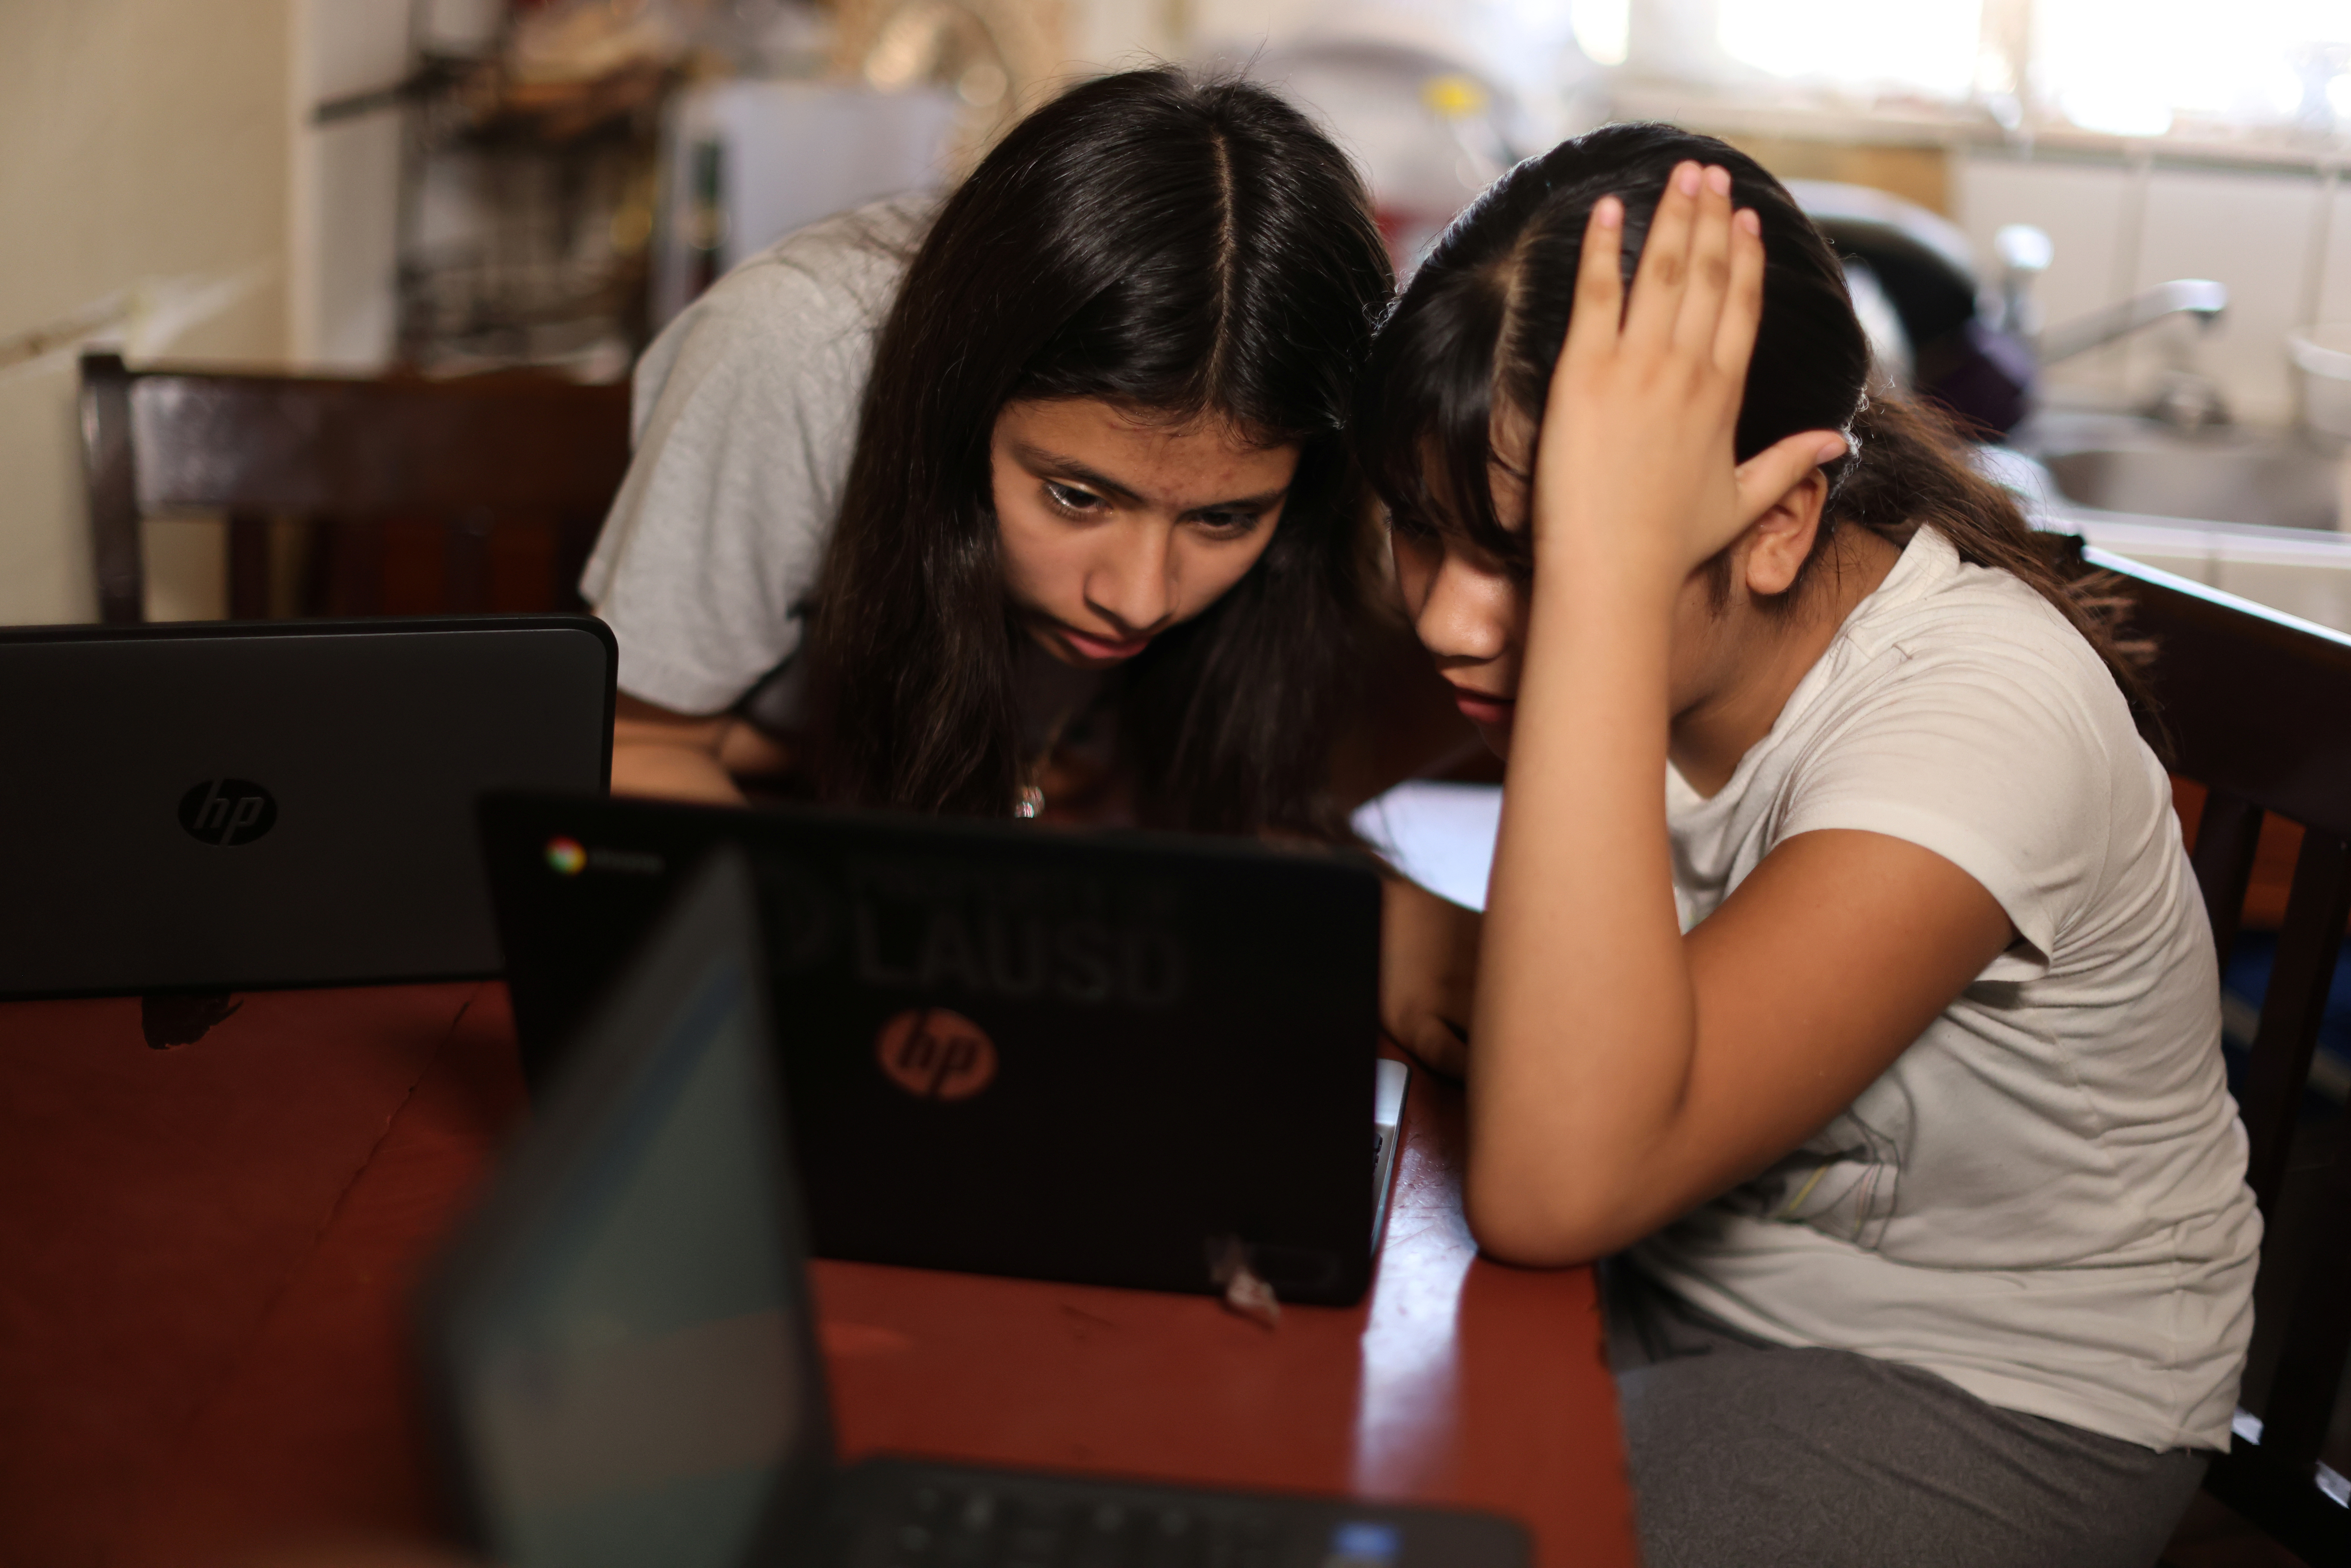 Los Angeles Unified School District (LAUSD) students Keiley Flores, 13, and Andrea Ramos, 10, work on school-issued computers with unreliable internet connectivity, at their home in Los Angeles, California, U.S., August 18, 2020.  REUTERS/Lucy Nicholson - RC2LGI9TPNZ9